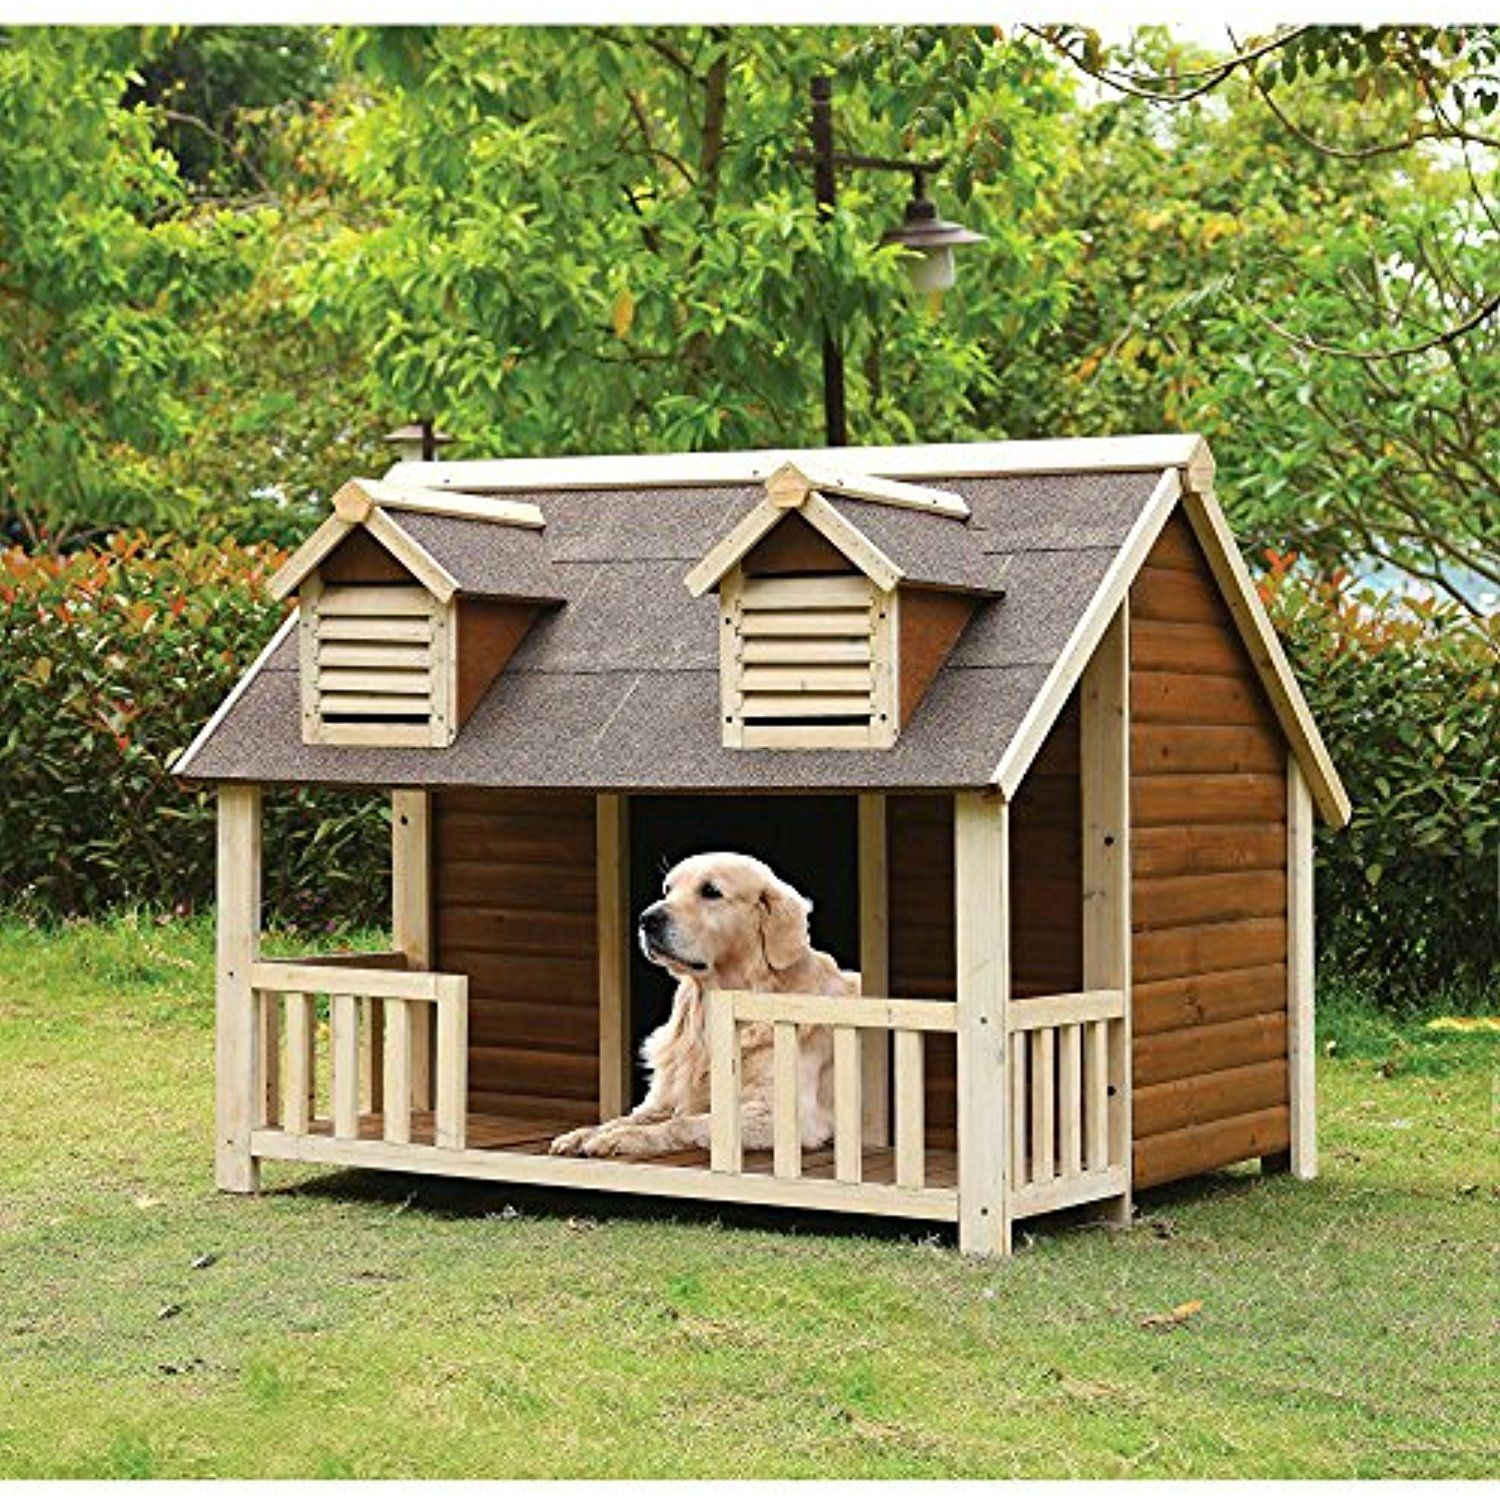 Medium Dog House With Porch Pet Puppy Wooden Outdoor Slanted Roof